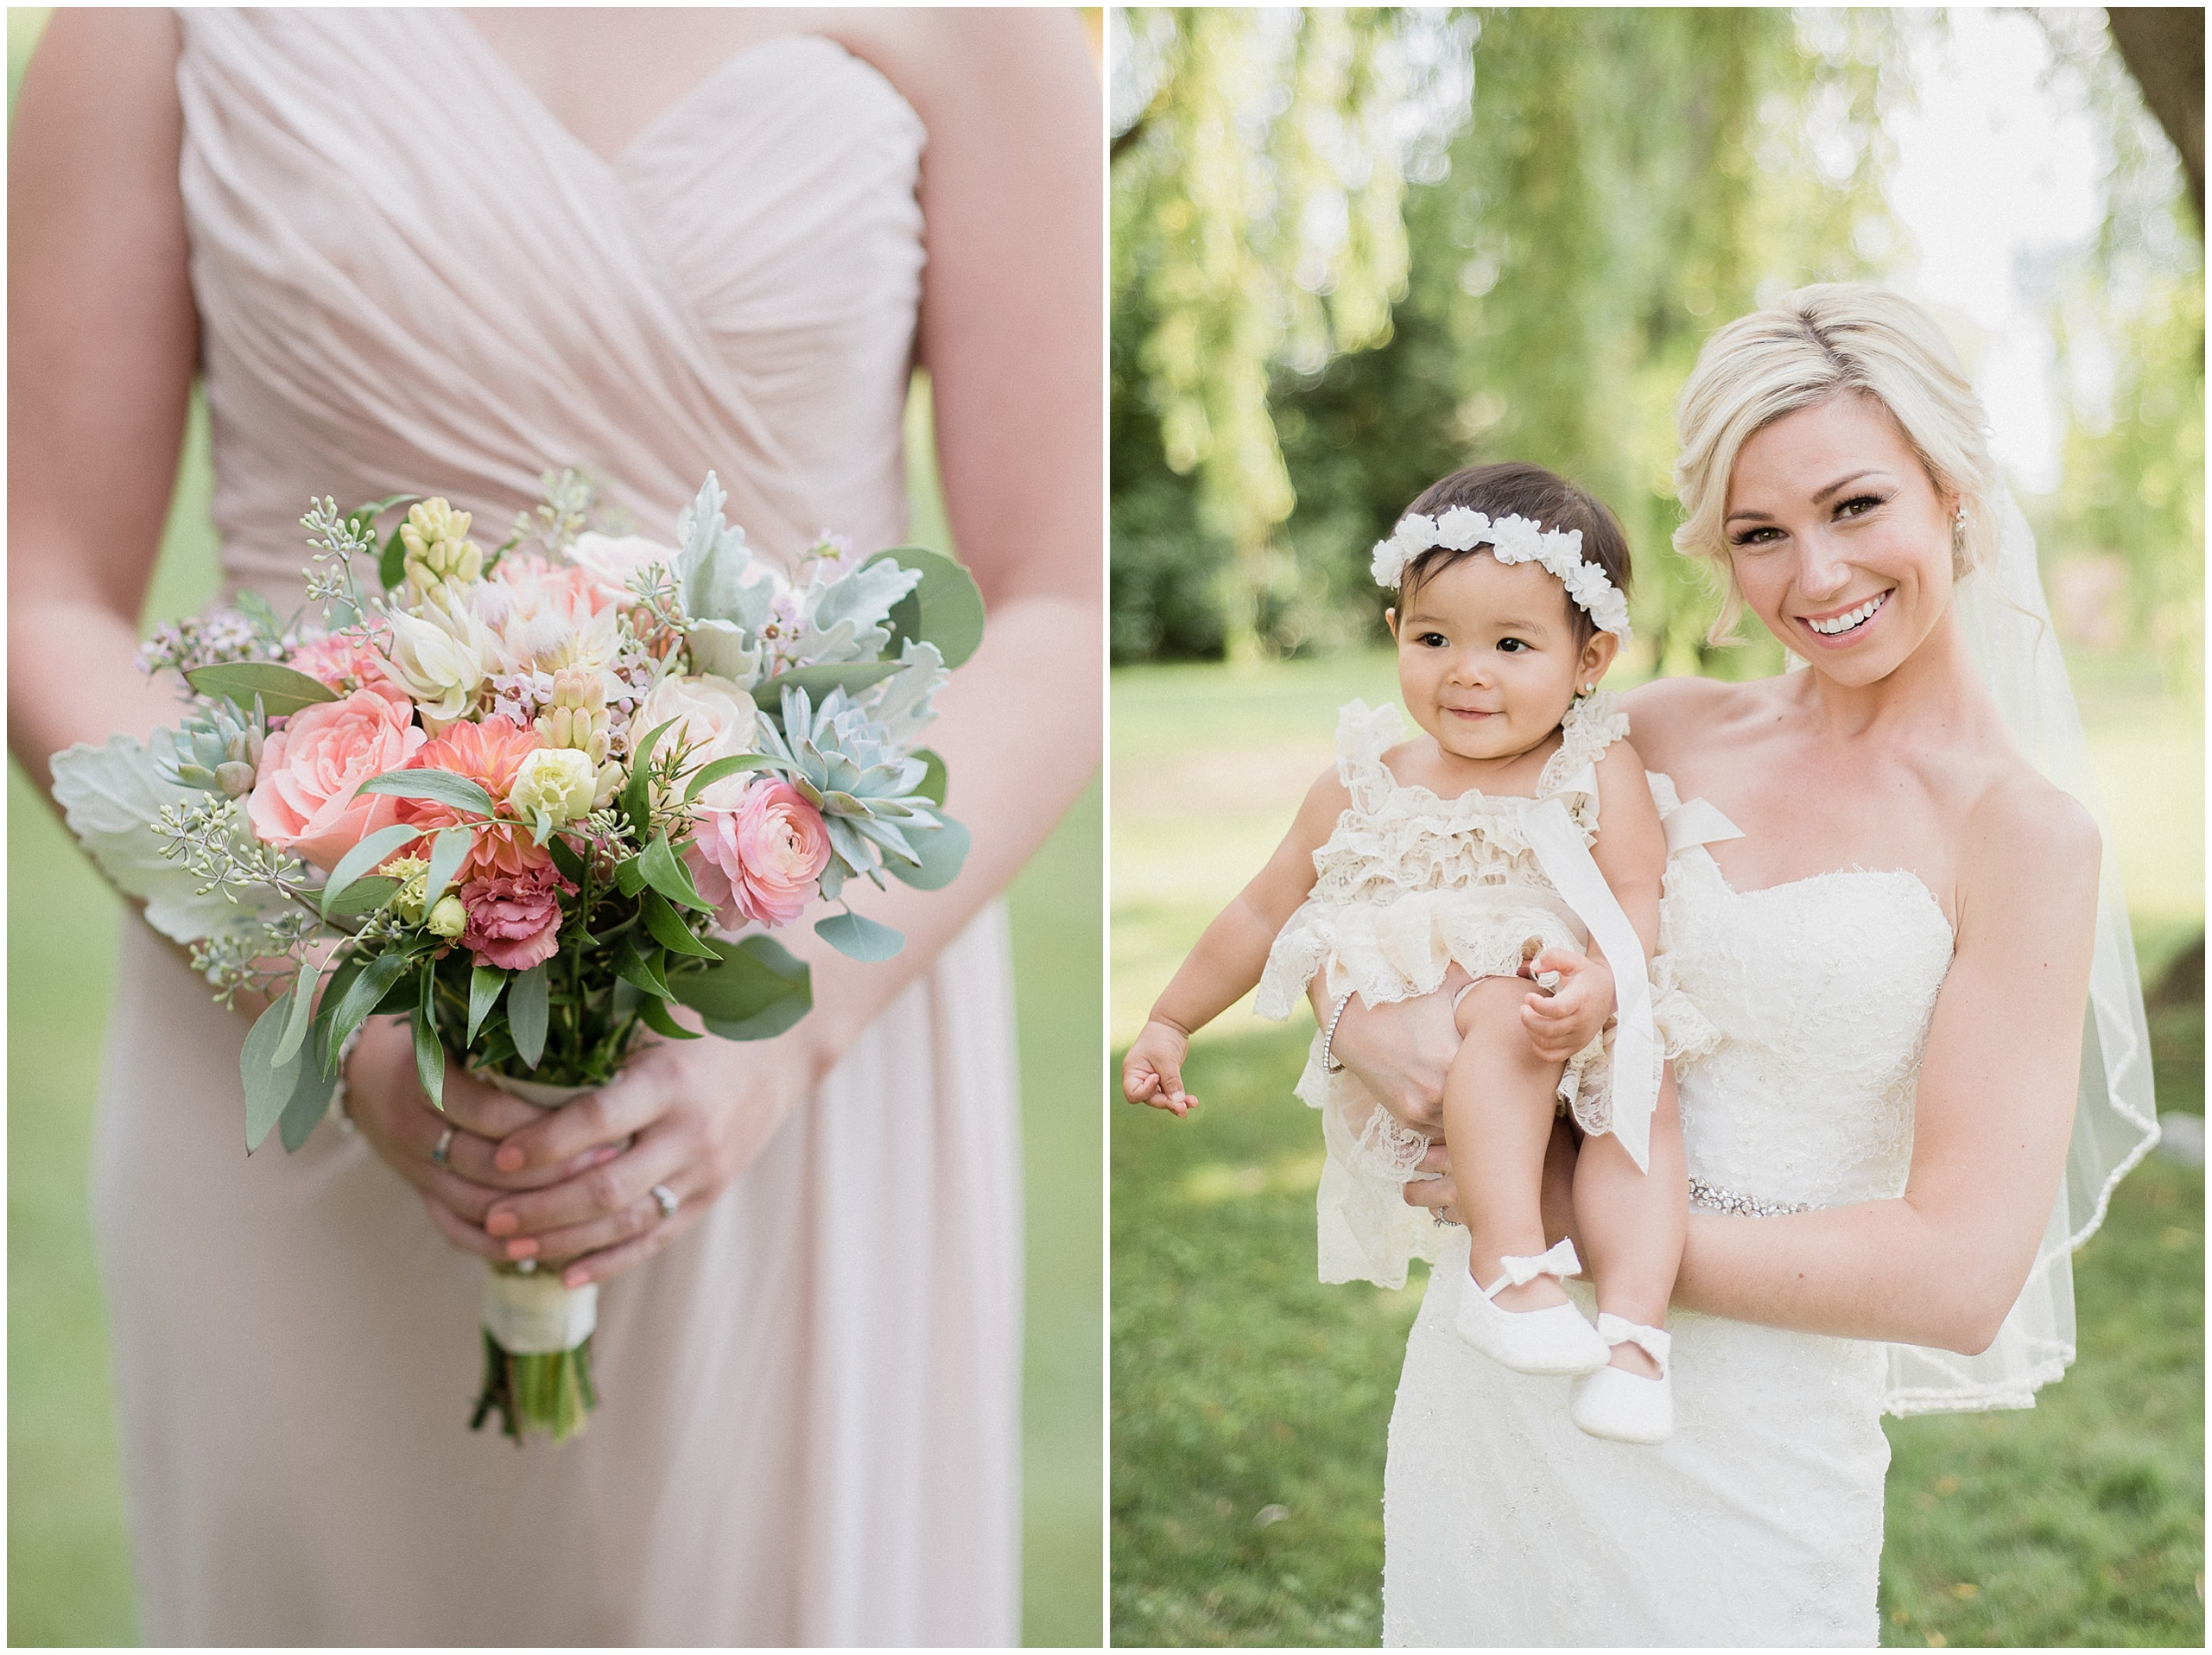 Bridesmaids bouquet with succulents, garden roses, and peonies. Bride holding flower girl with flower crown. Photographed by Jenn Kavanagh Photography